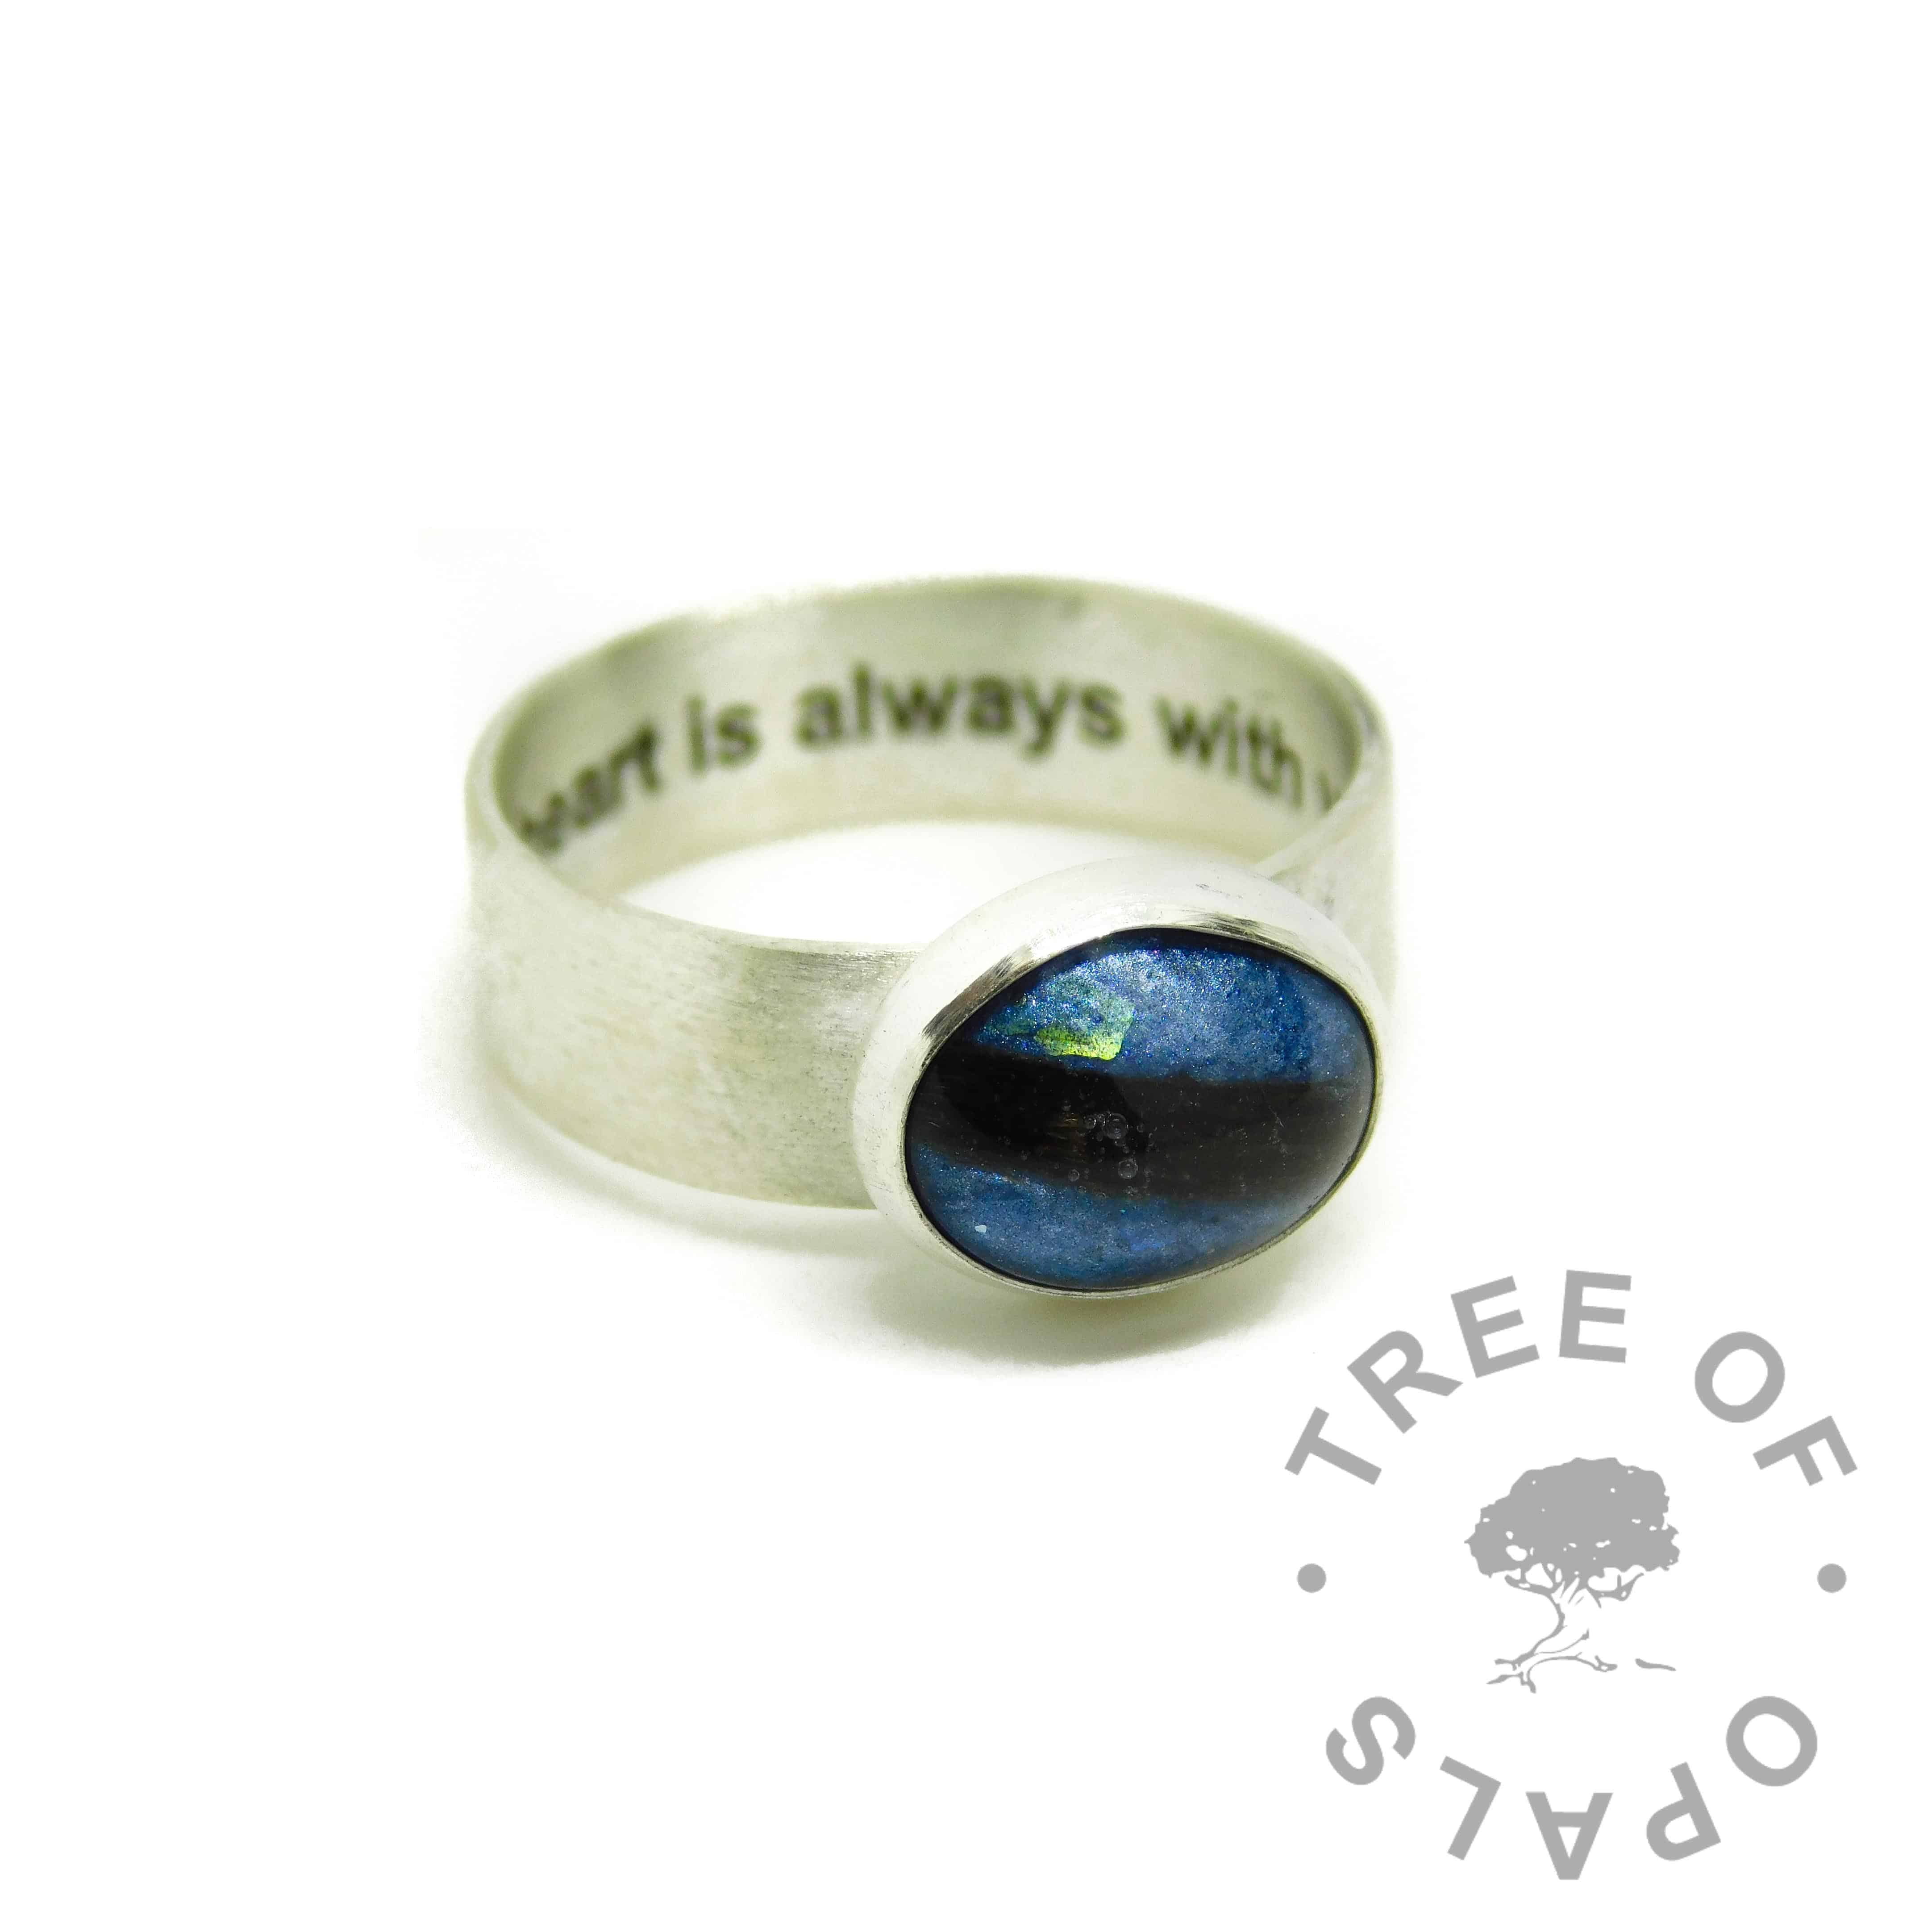 aegean blue resin sparkle mix and hair ring, 6mm shiny band engraved inside with arial font